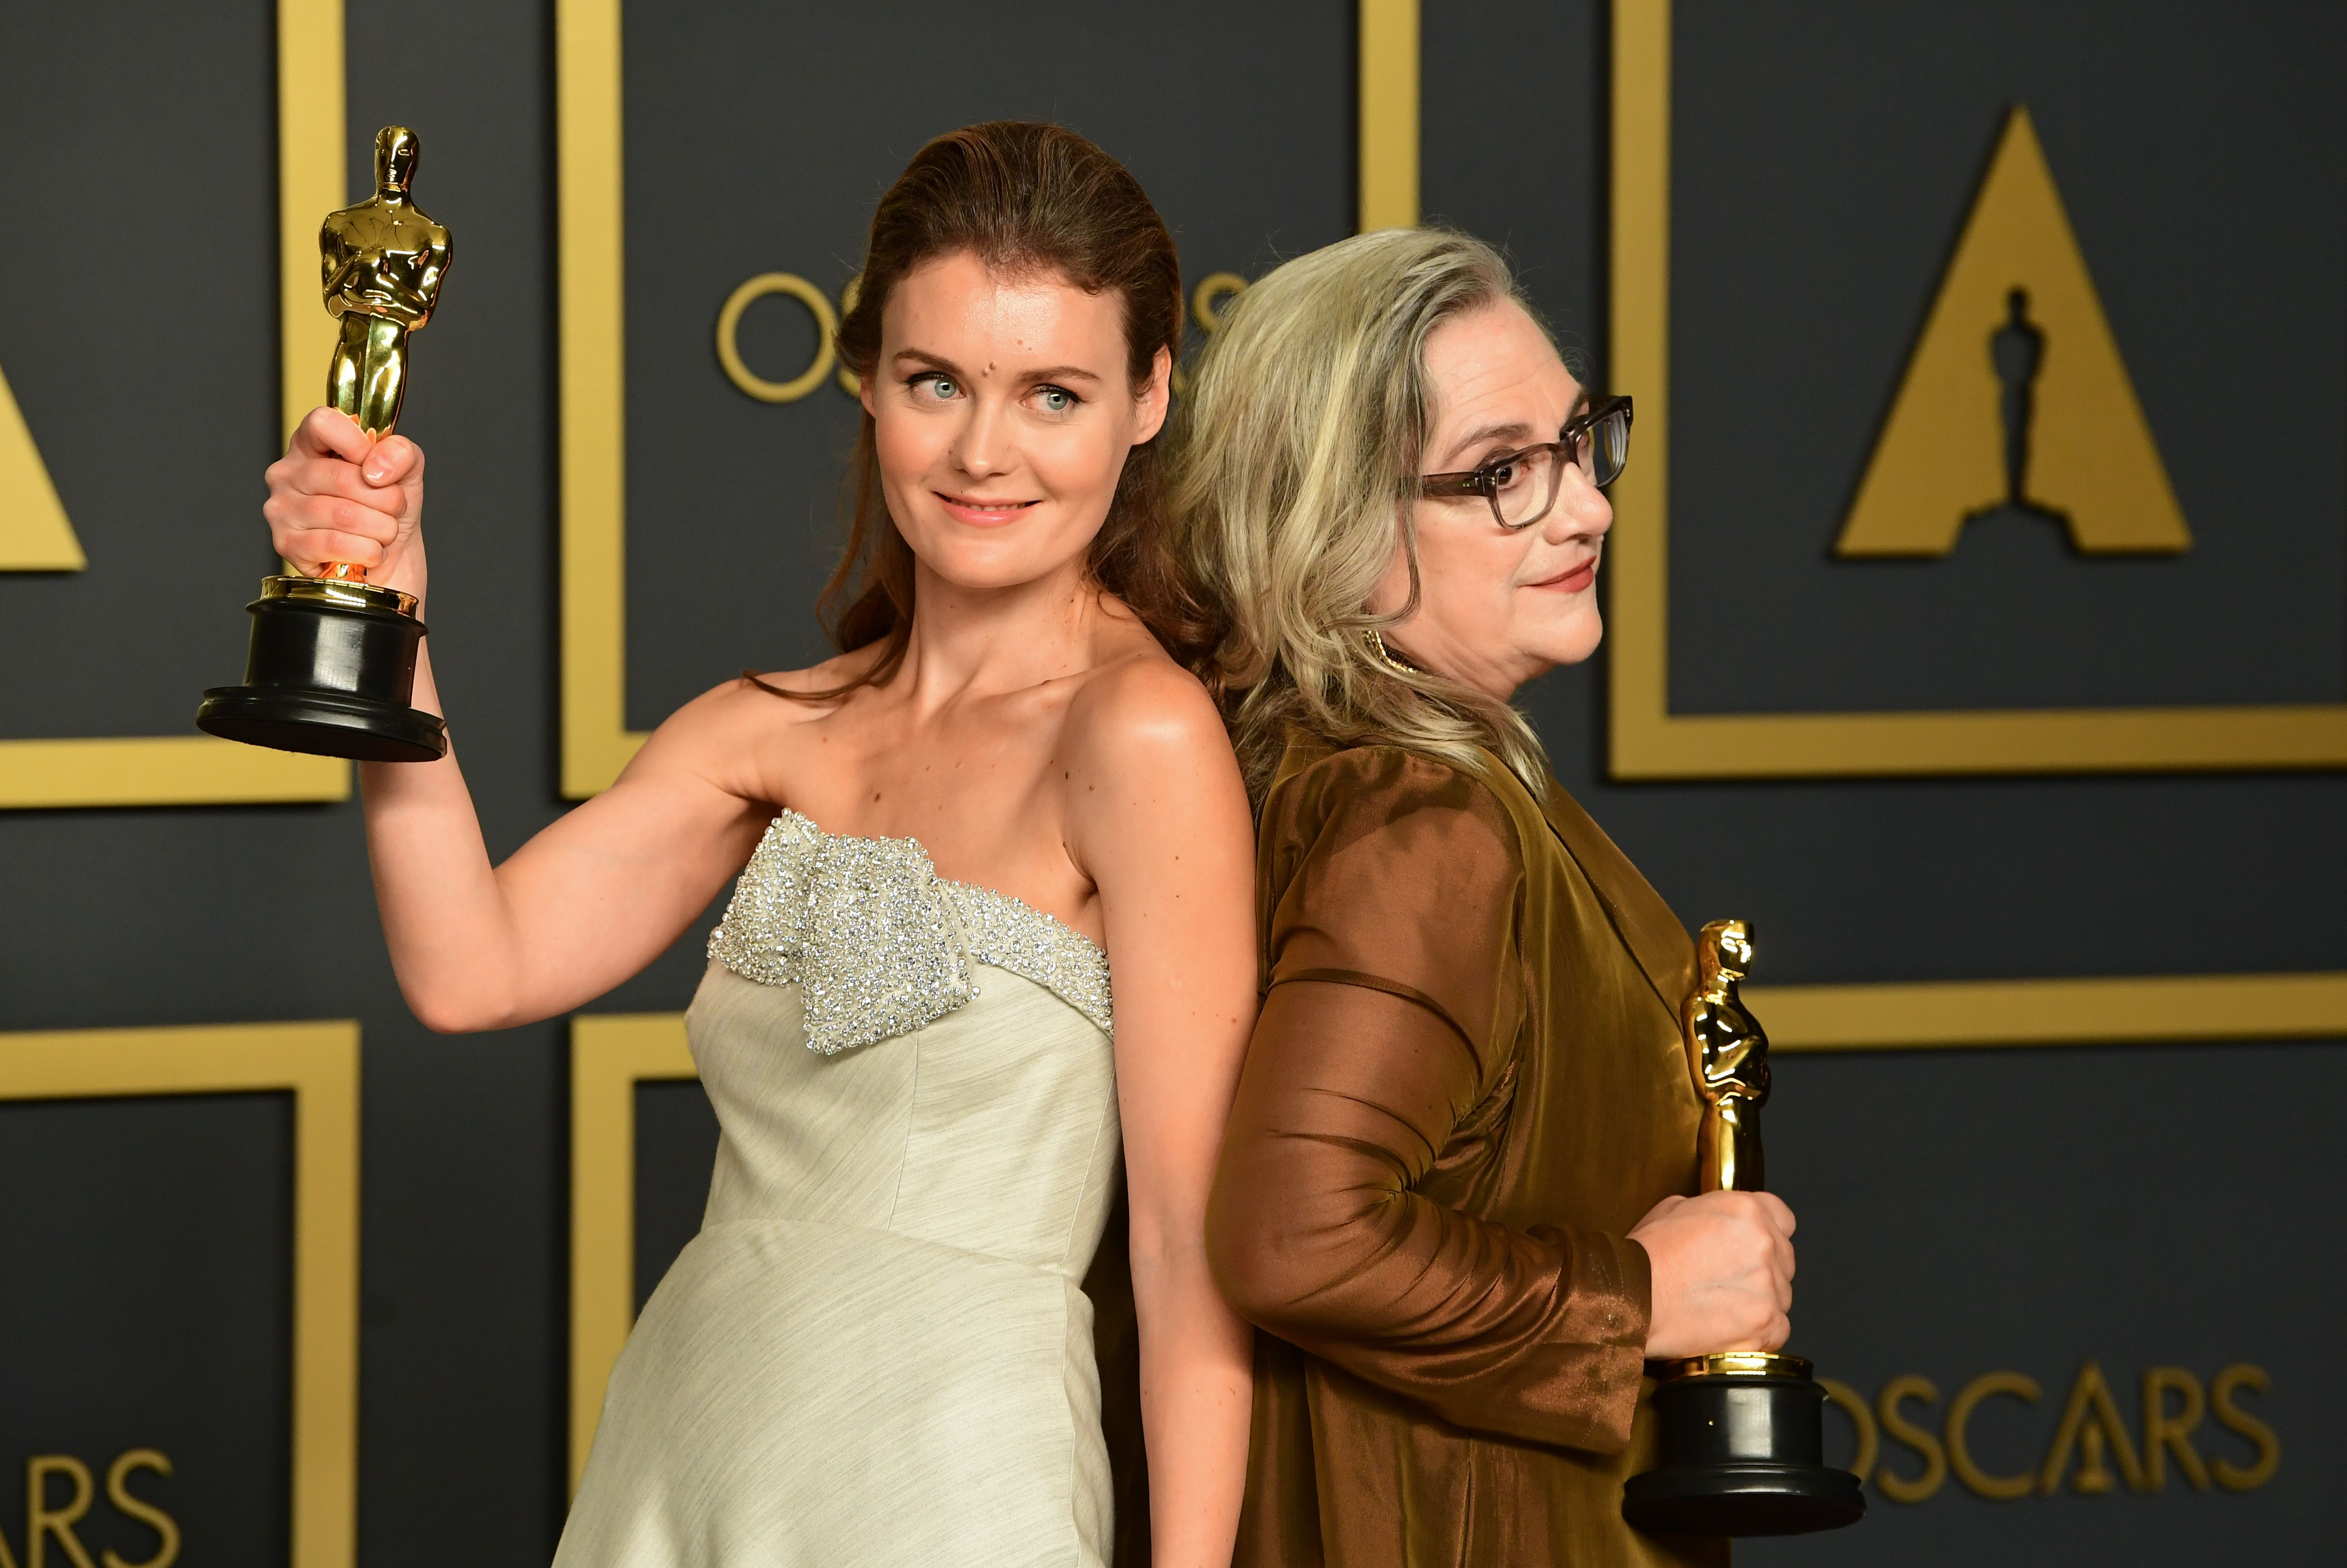 """US filmmaker Carol Dysinger (R) and director Elena Andreicheva (L) pose in the press room with the Oscar for Best Short Subject Documentary for """"Learning to Skateboard in a Warzone (If You're a Girl)"""" during the 92nd Oscars at the Dolby Theater in Hollywood, California on February 9, 2020. (Photo by FREDERIC J. BROWN / AFP) (Photo by FREDERIC J. BROWN/AFP via Getty Images)"""